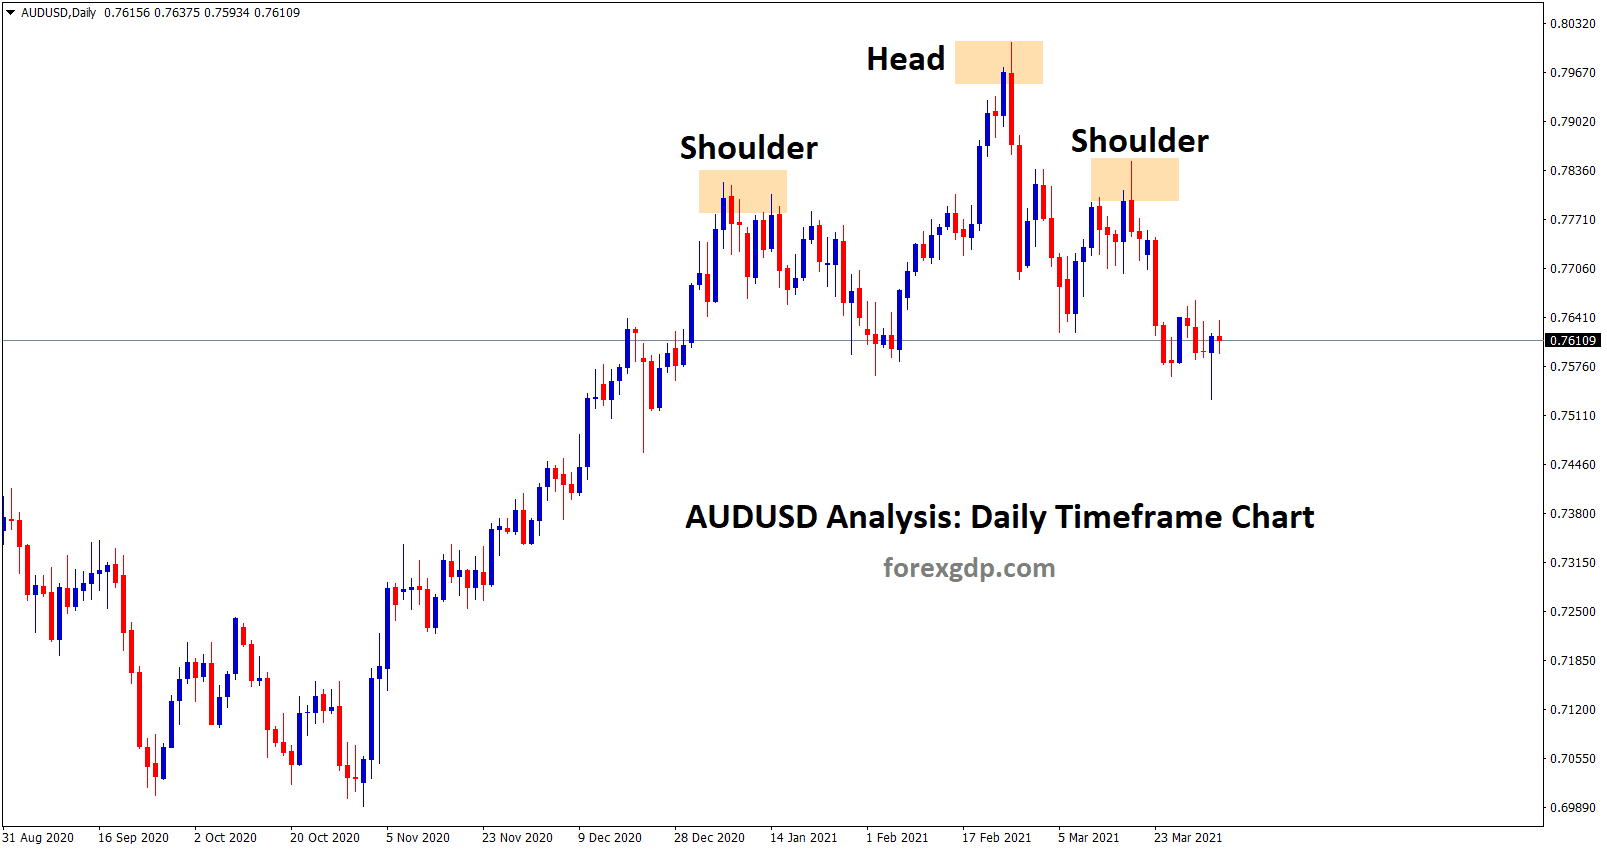 AUDUSD head and shoulder pattern formed in the daily chart